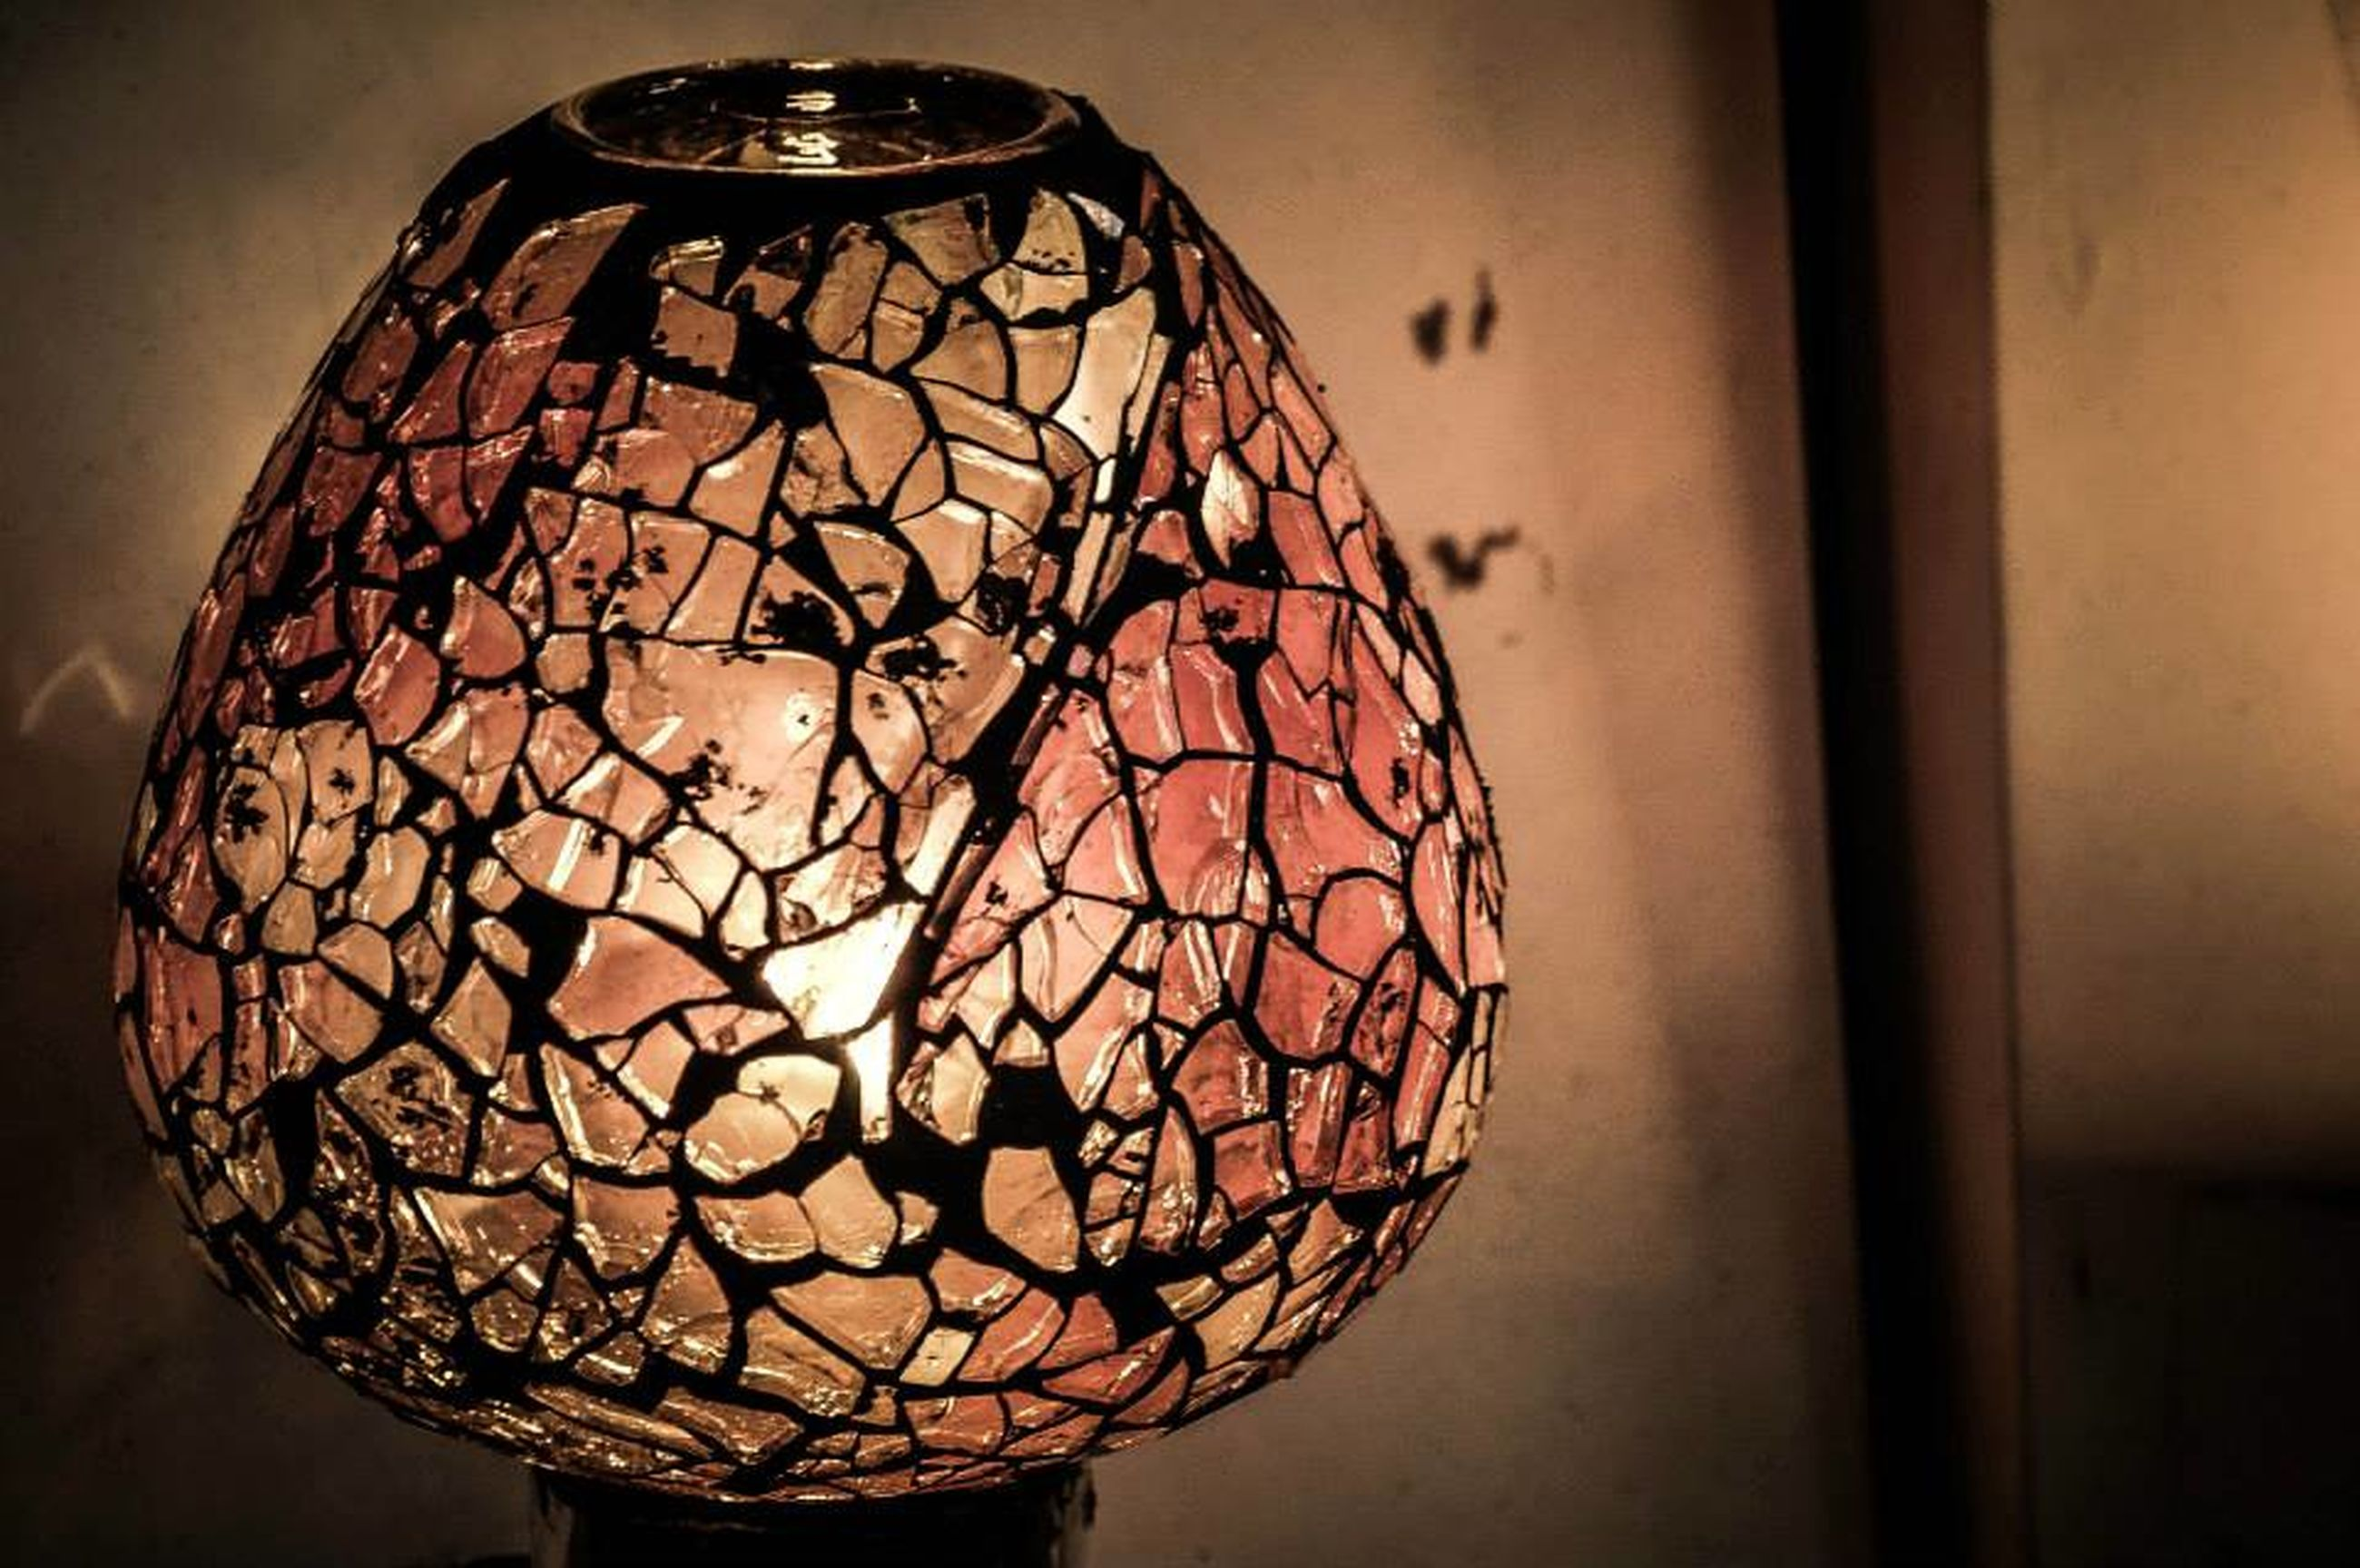 indoors, illuminated, lighting equipment, close-up, decoration, hanging, art and craft, art, home interior, creativity, electricity, wall - building feature, low angle view, design, still life, electric lamp, lantern, decor, light bulb, no people